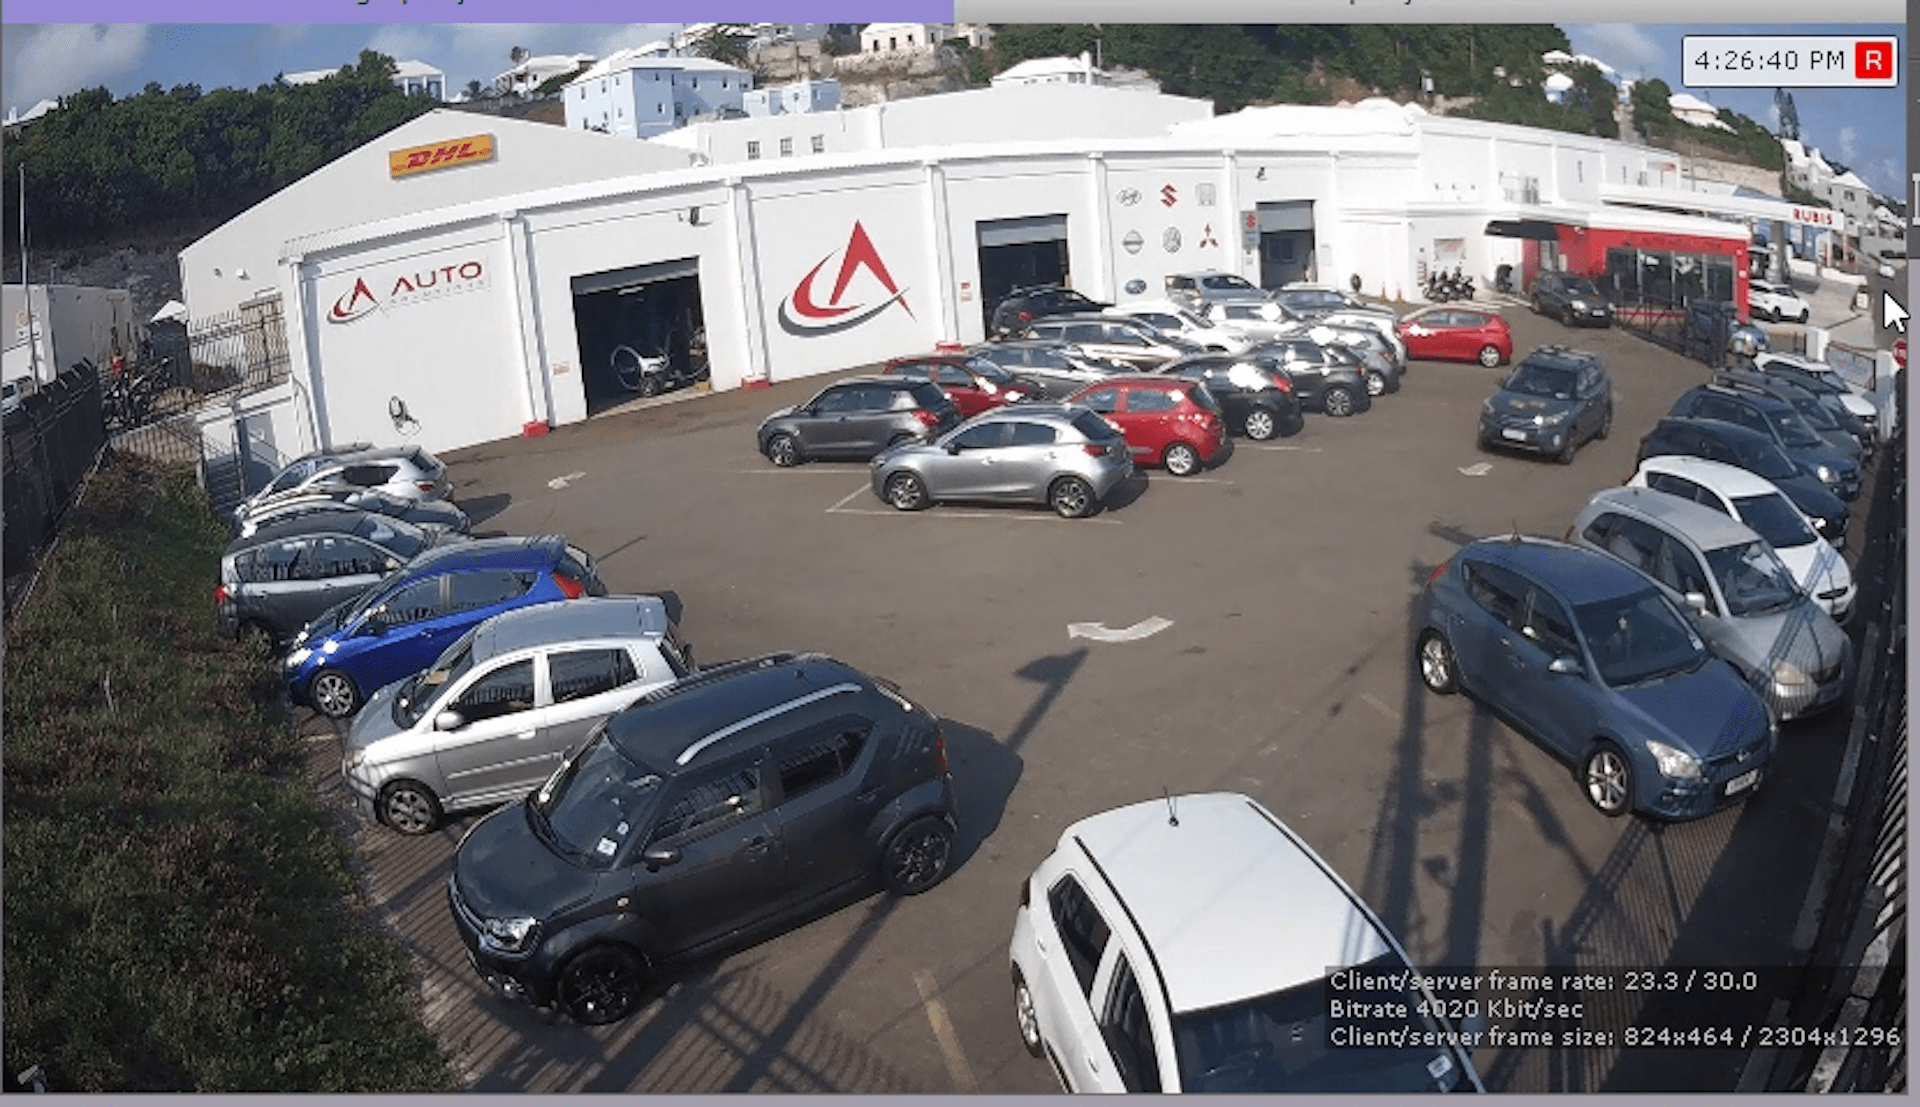 Auto Solutions Upgrade CCTV at St. John's Road with Arkiv Video Management Software 1